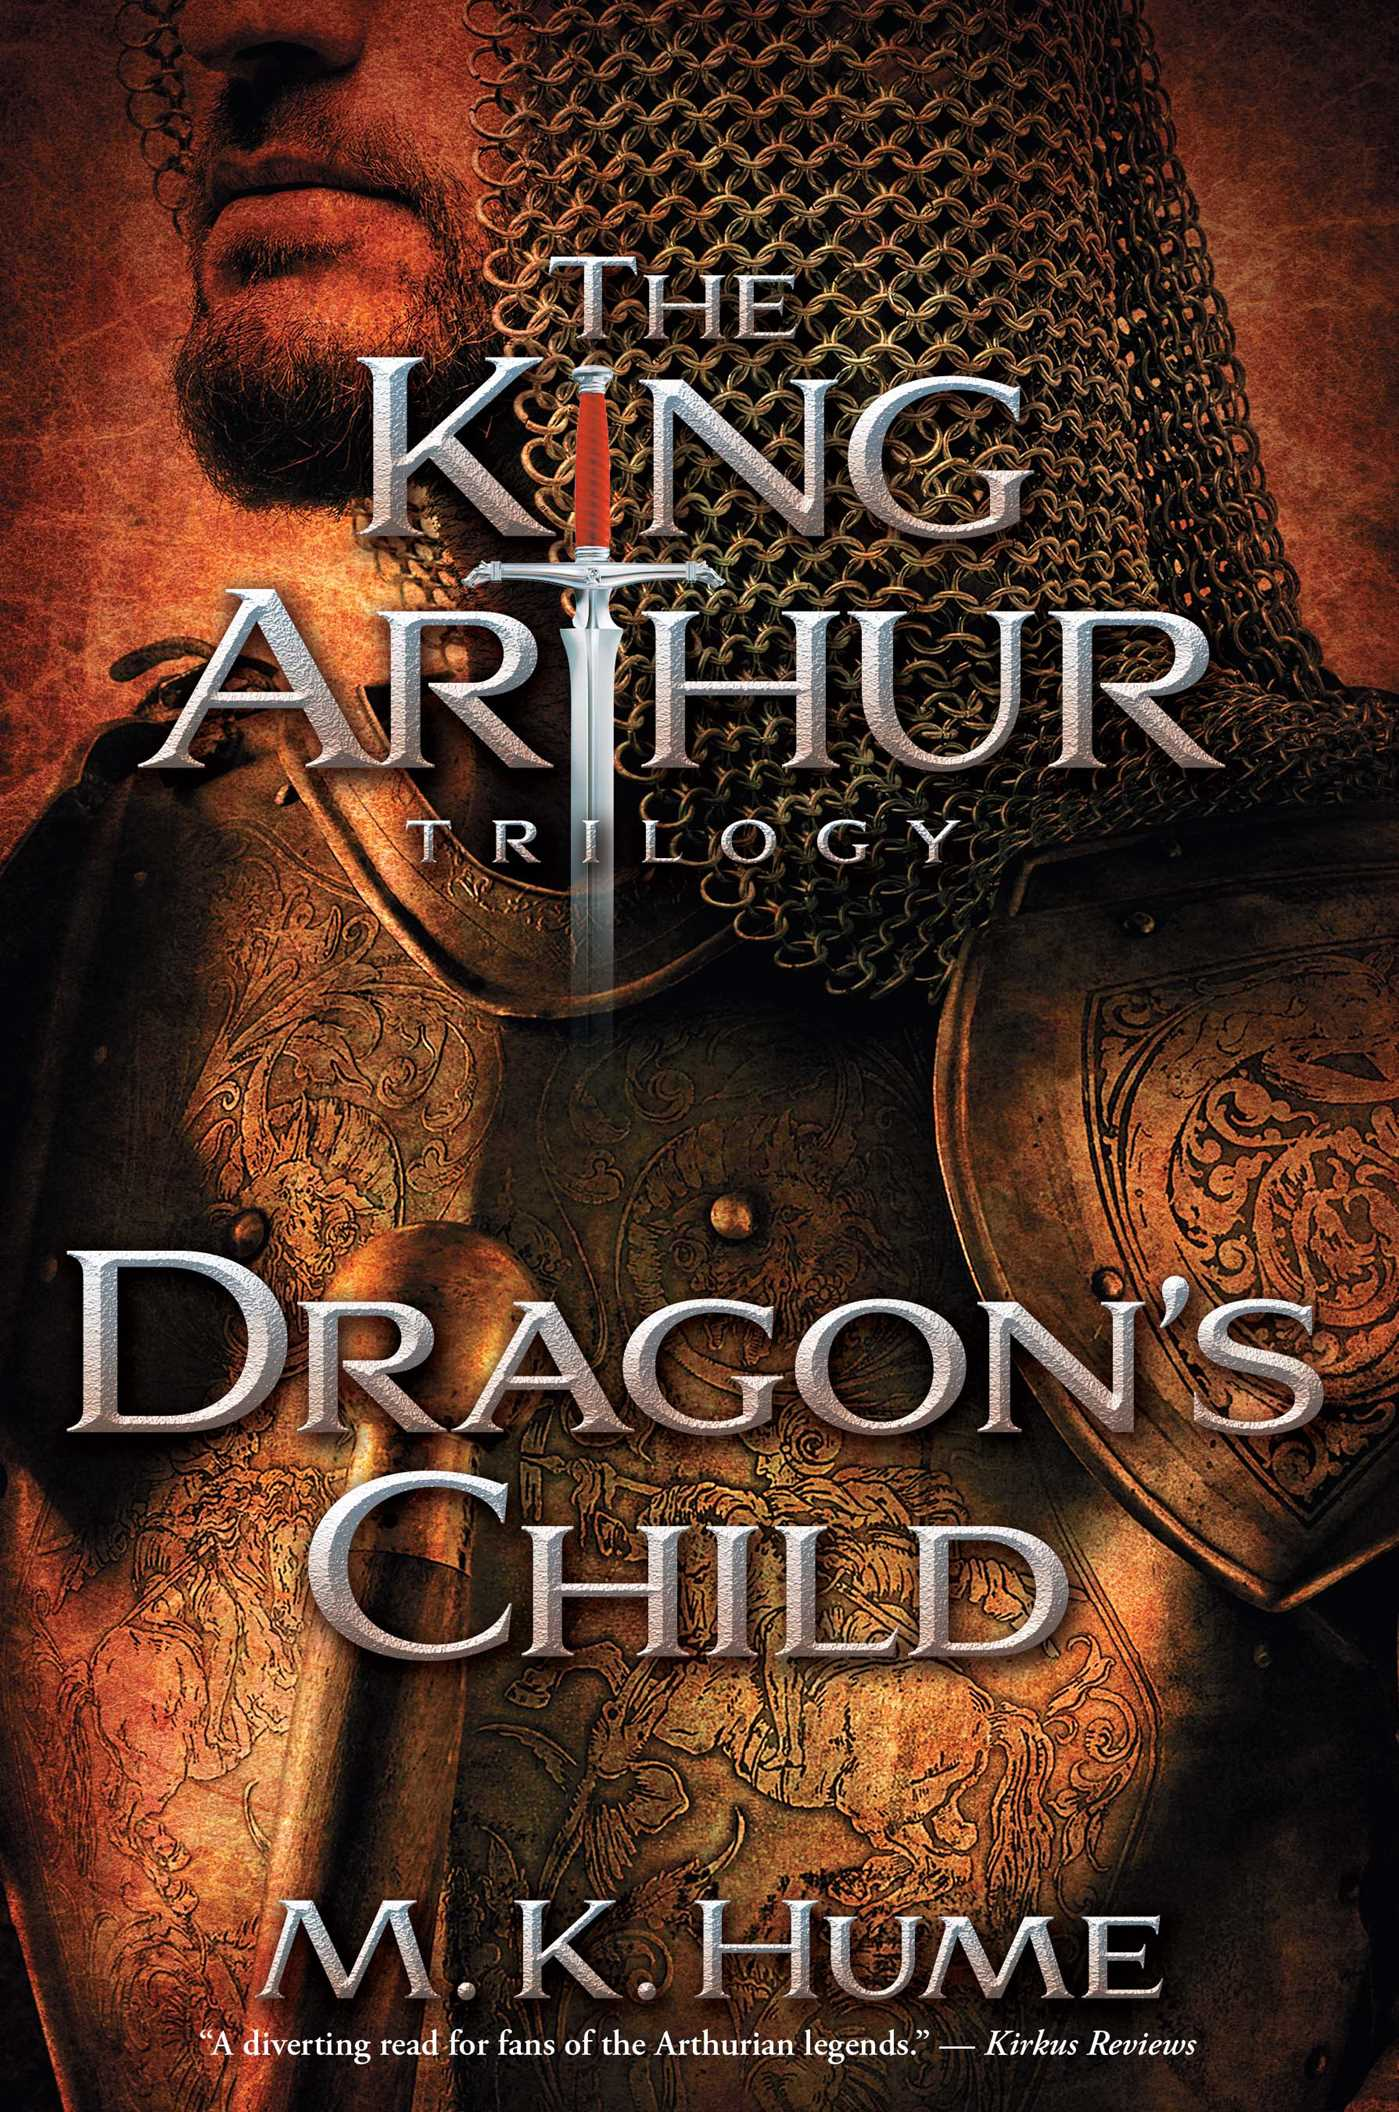 The-king-arthur-trilogy-book-one-dragons-child-9781476715186_hr